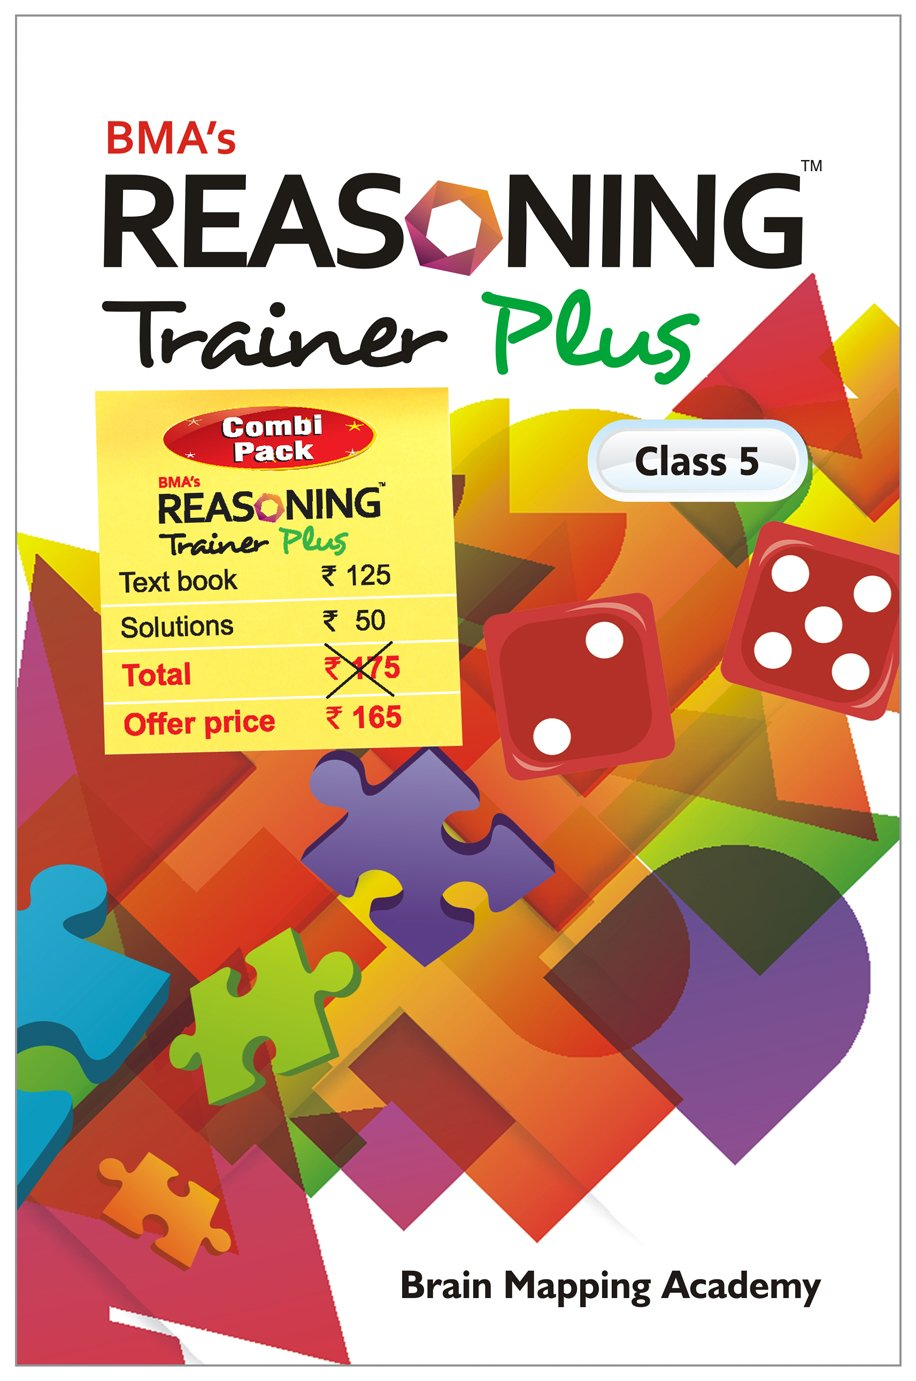 Reasoning Trainer Plus For Class 5 Bi Text Book Sol